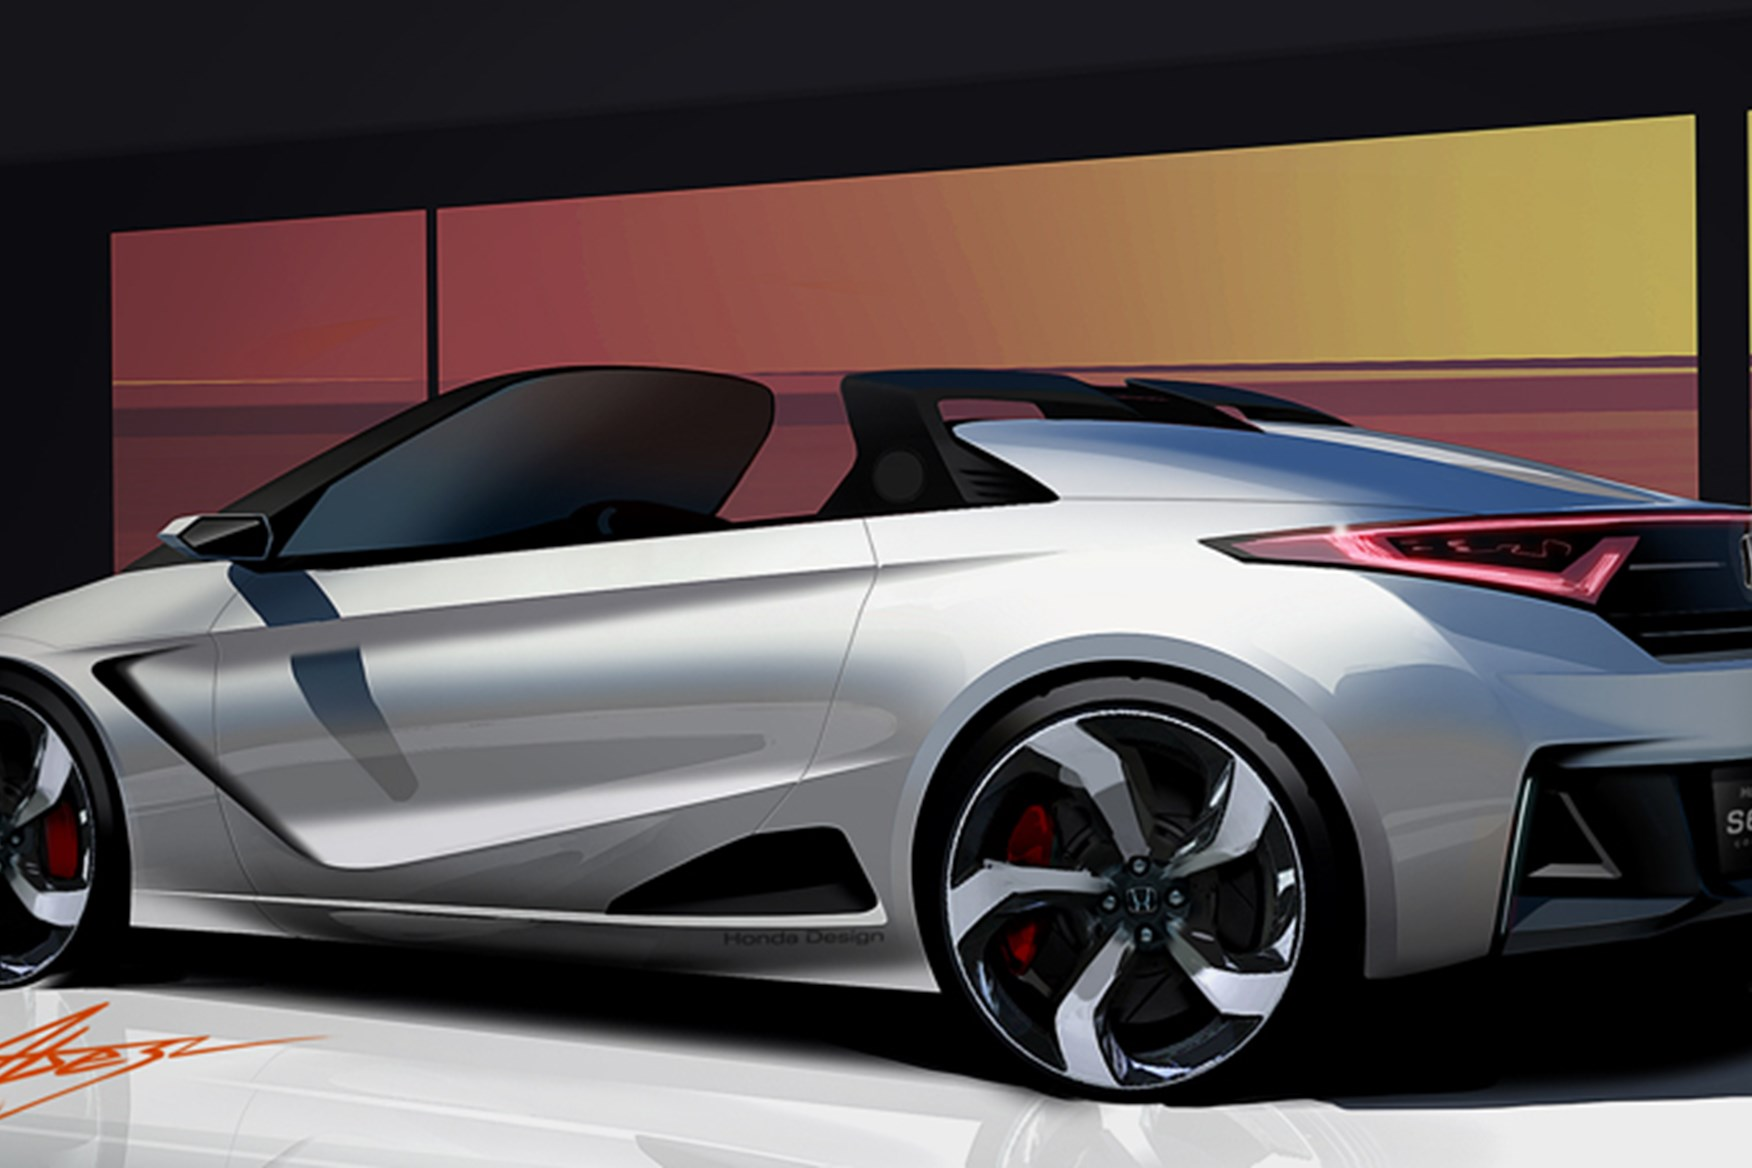 Honda S660 Sports Car Concept (2013) First Official Pictures | CAR Magazine